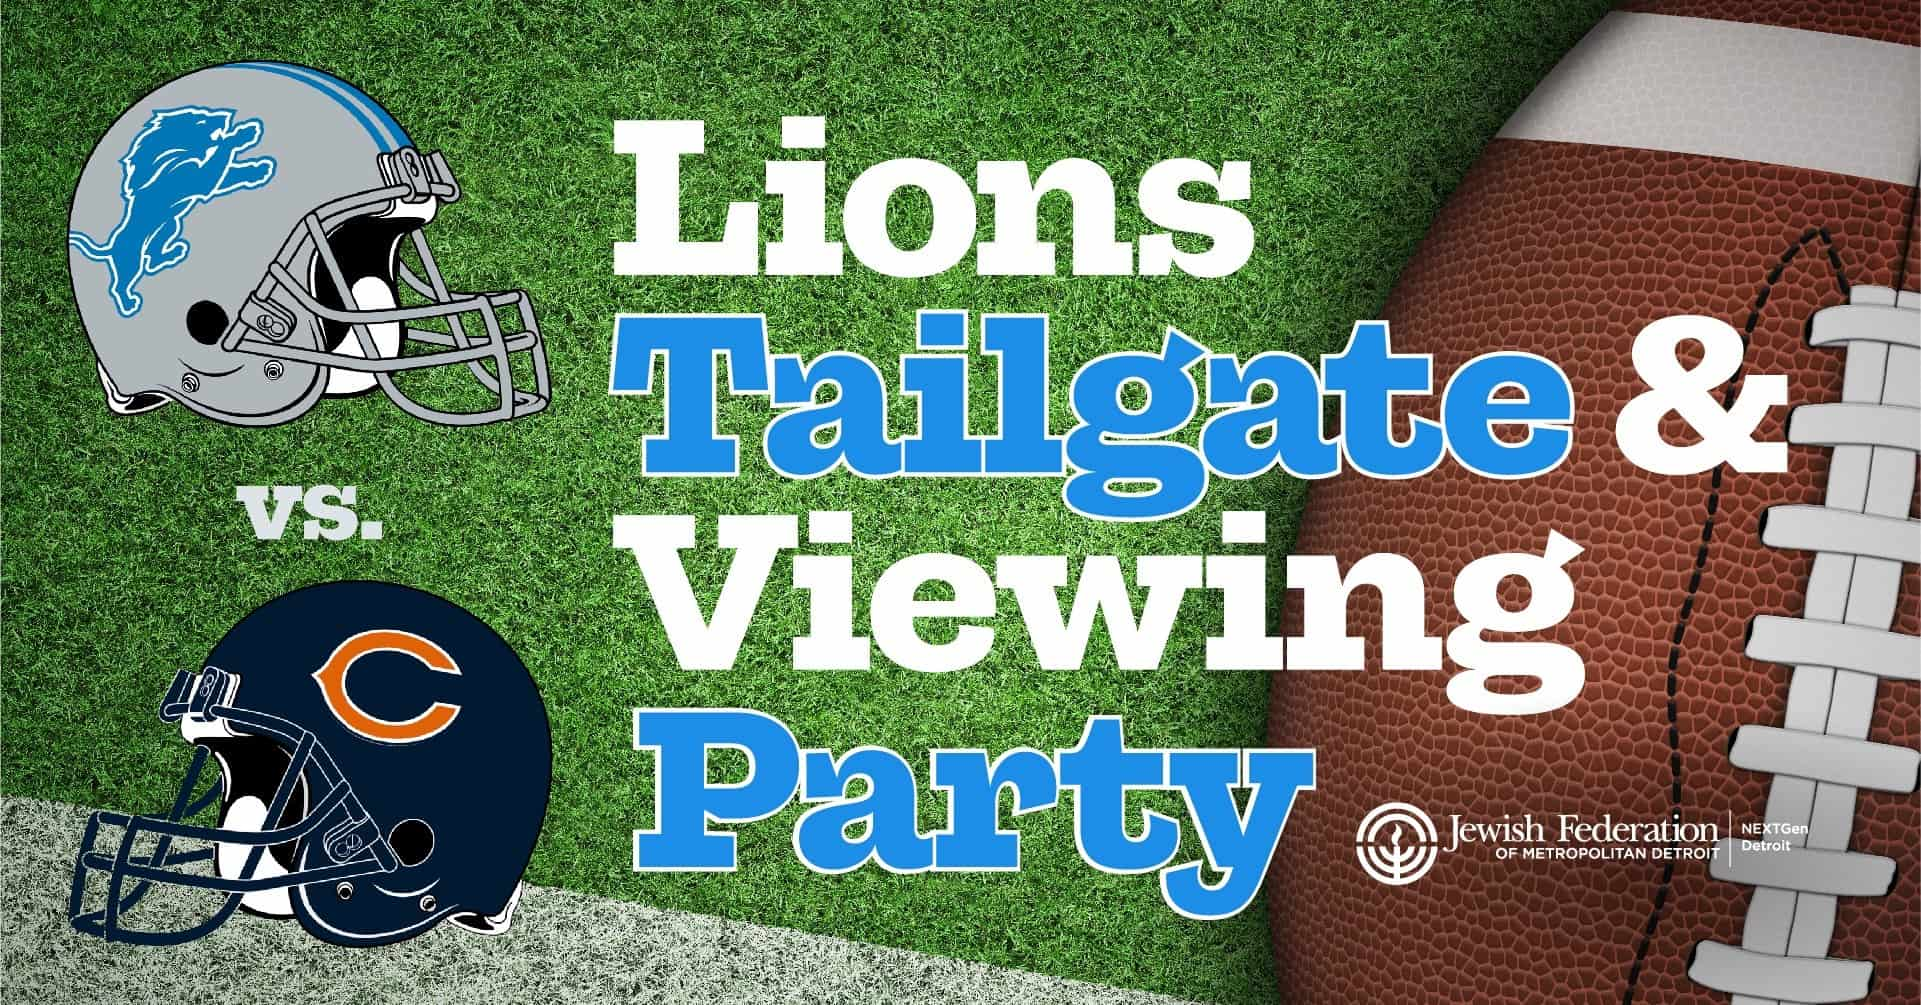 Lions Tailgate and Viewing Party